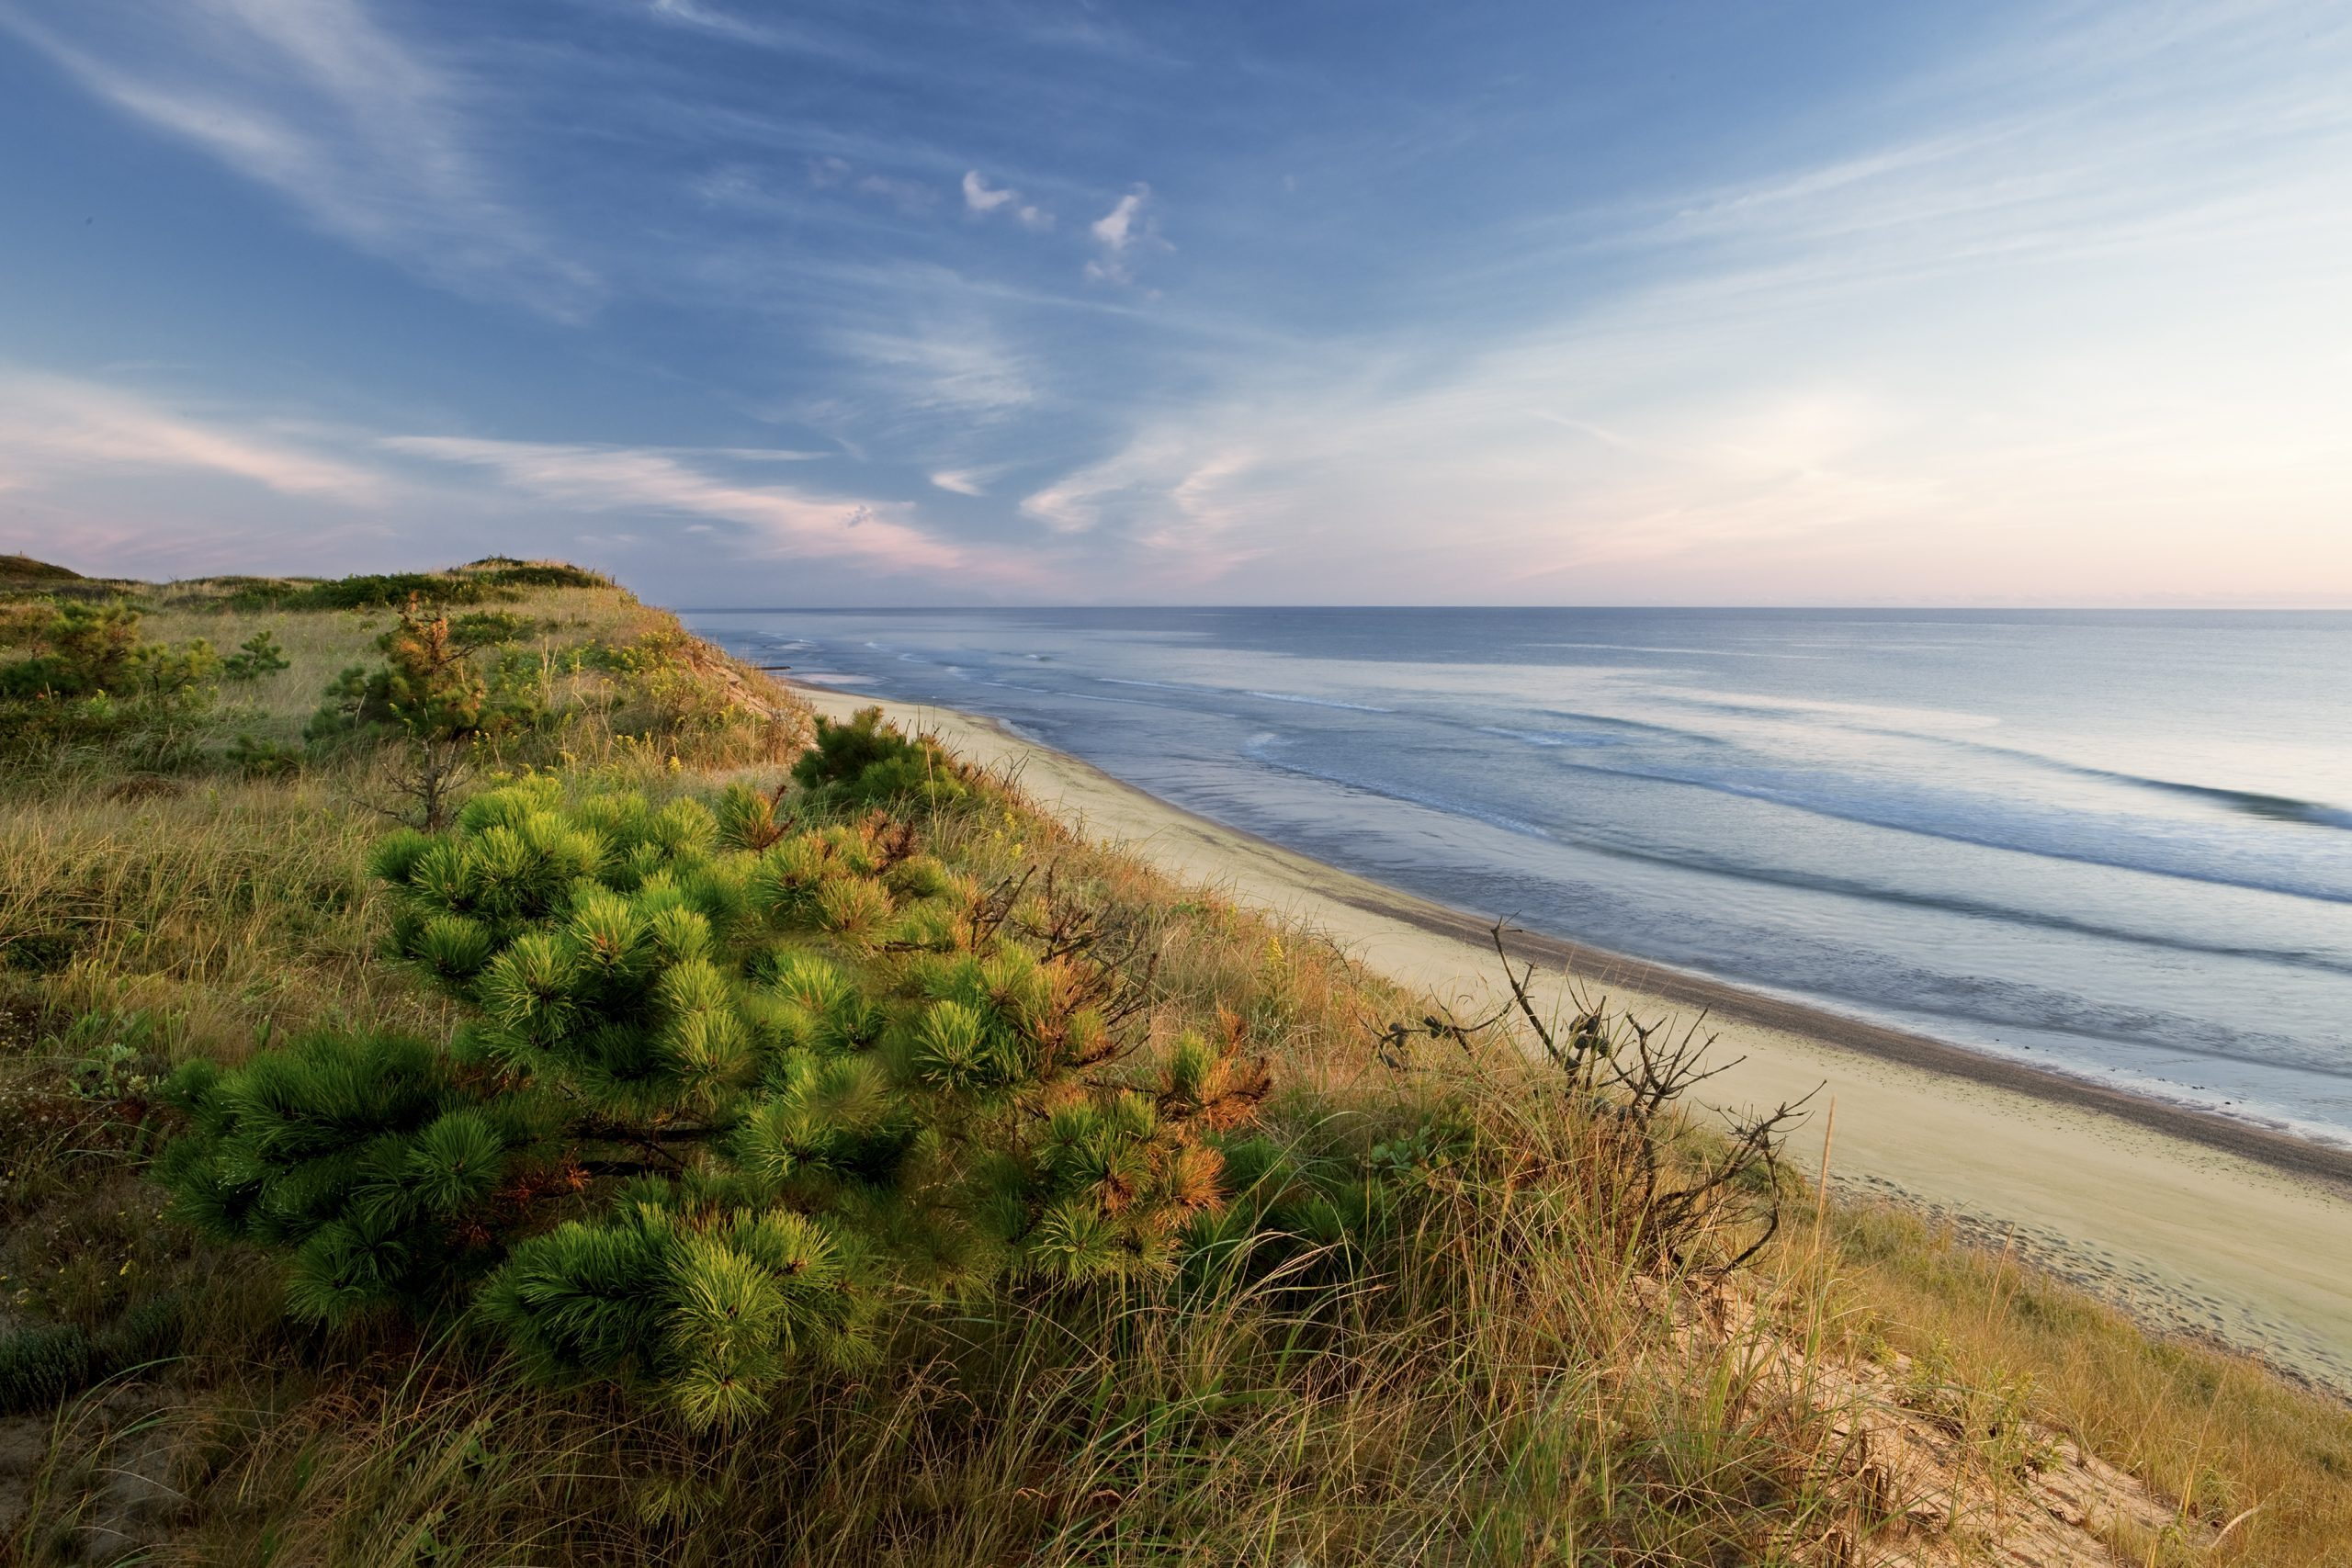 Dune's edge, pitch pine, Marconi beach, wellfleet, Cape Cod national seashore.